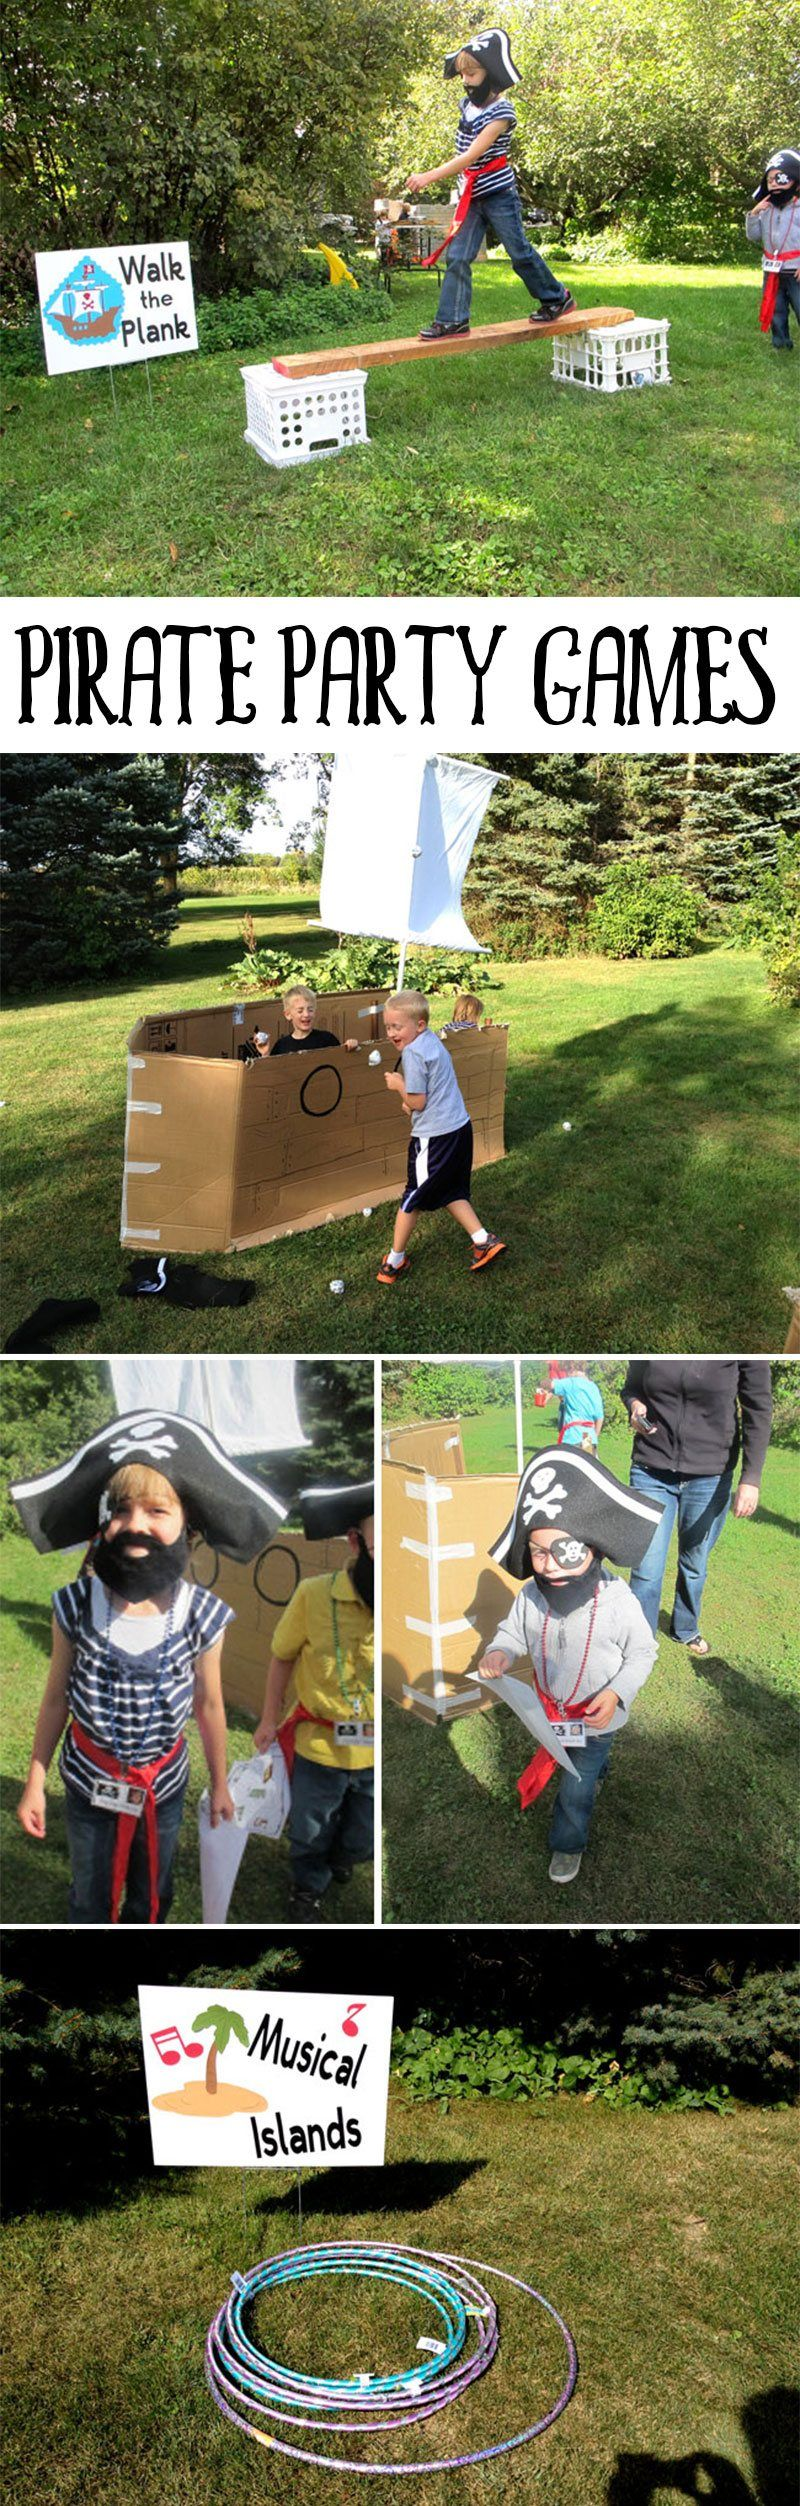 Pirate Party Ideas on